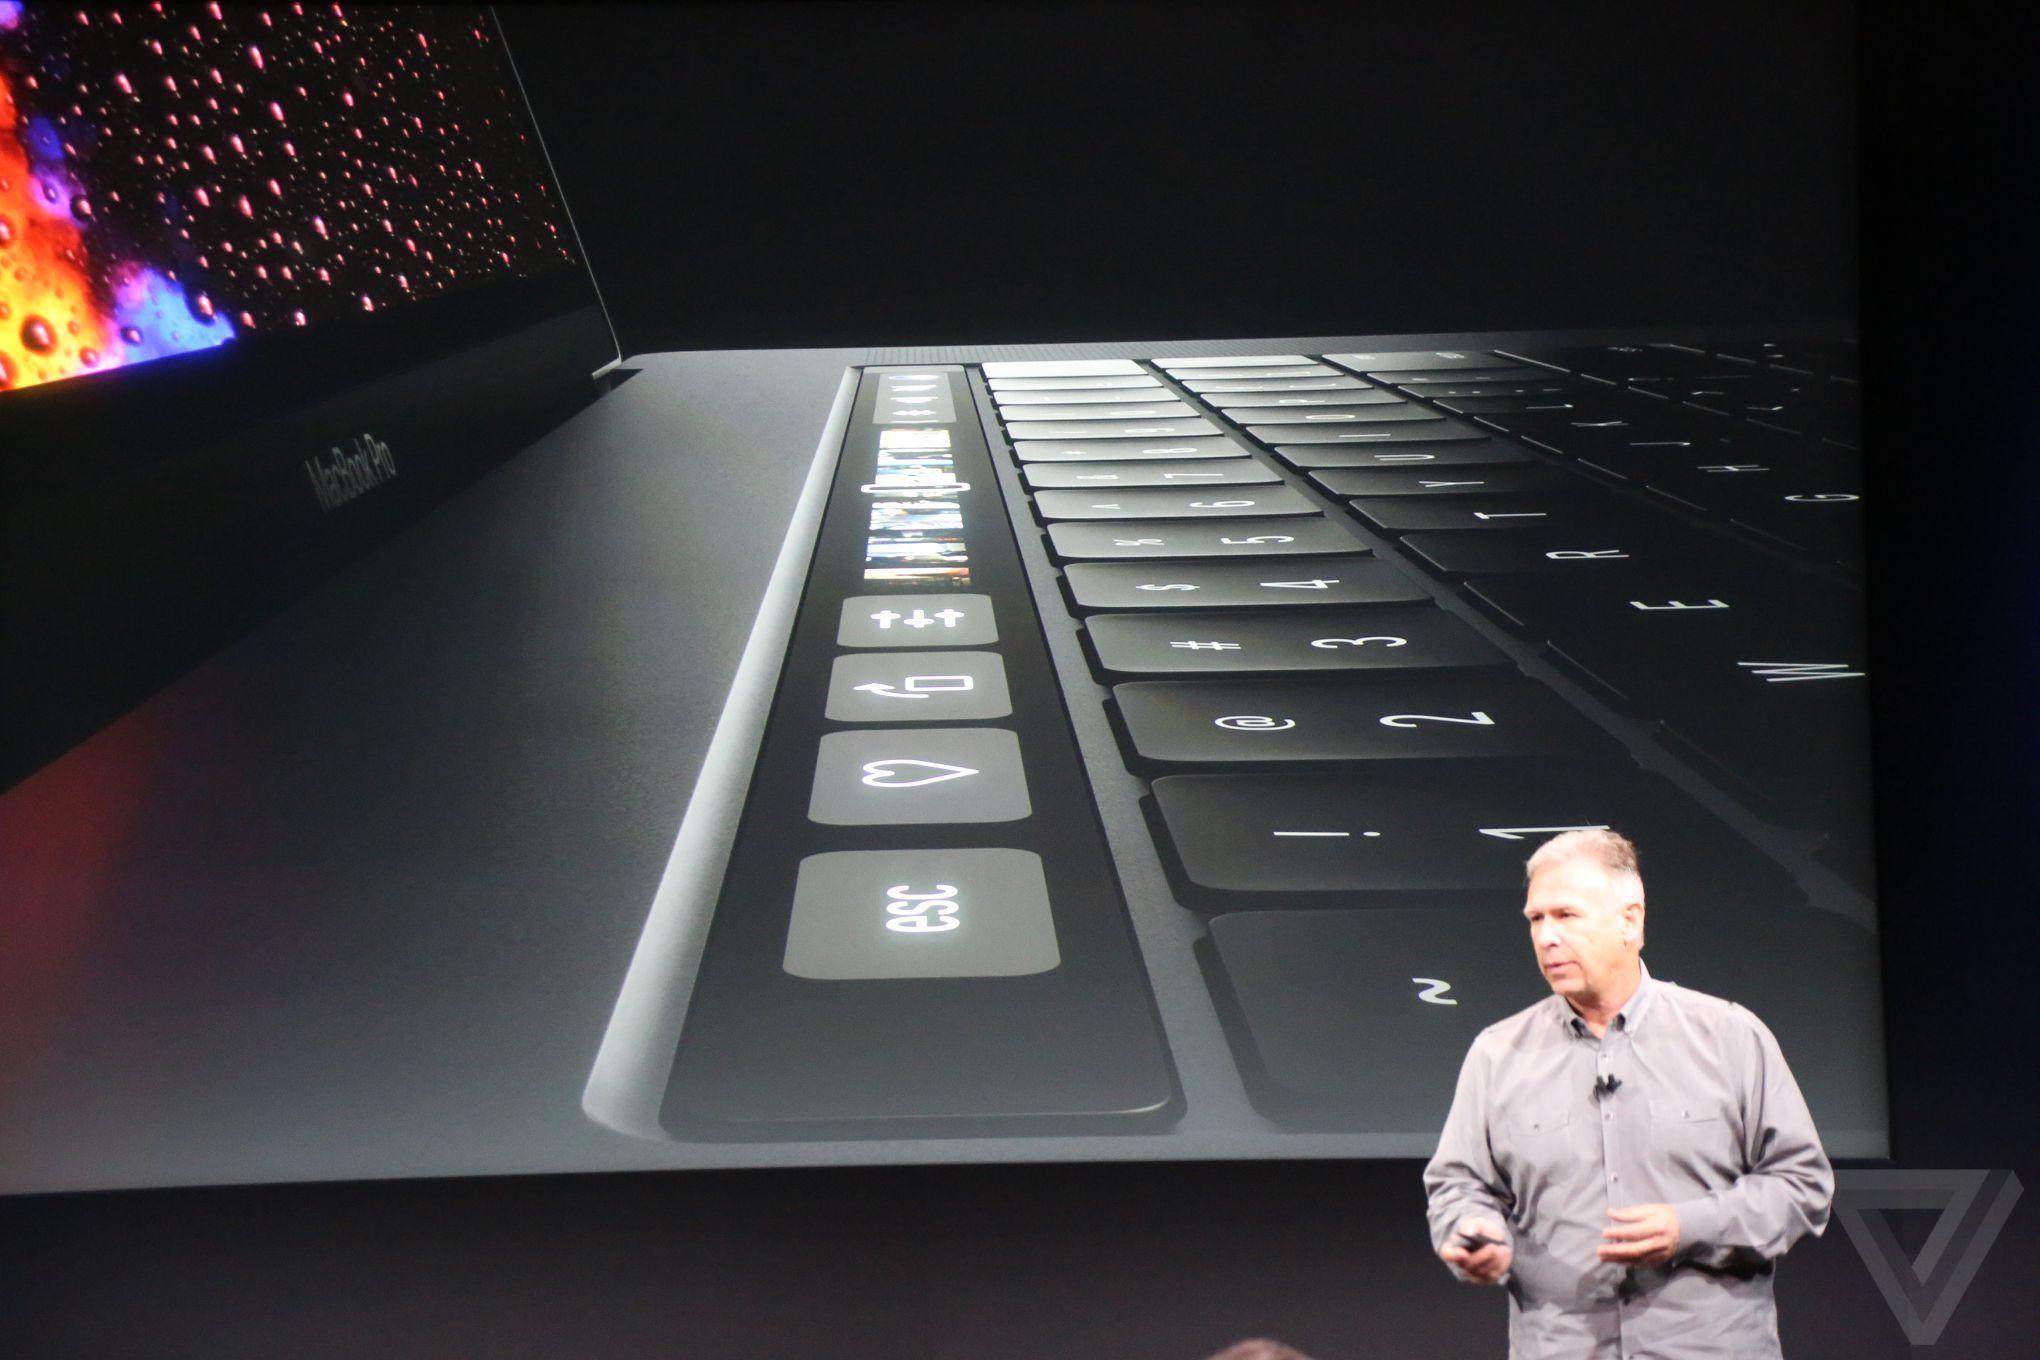 apple-macbook-event-20161027-8121.jpg